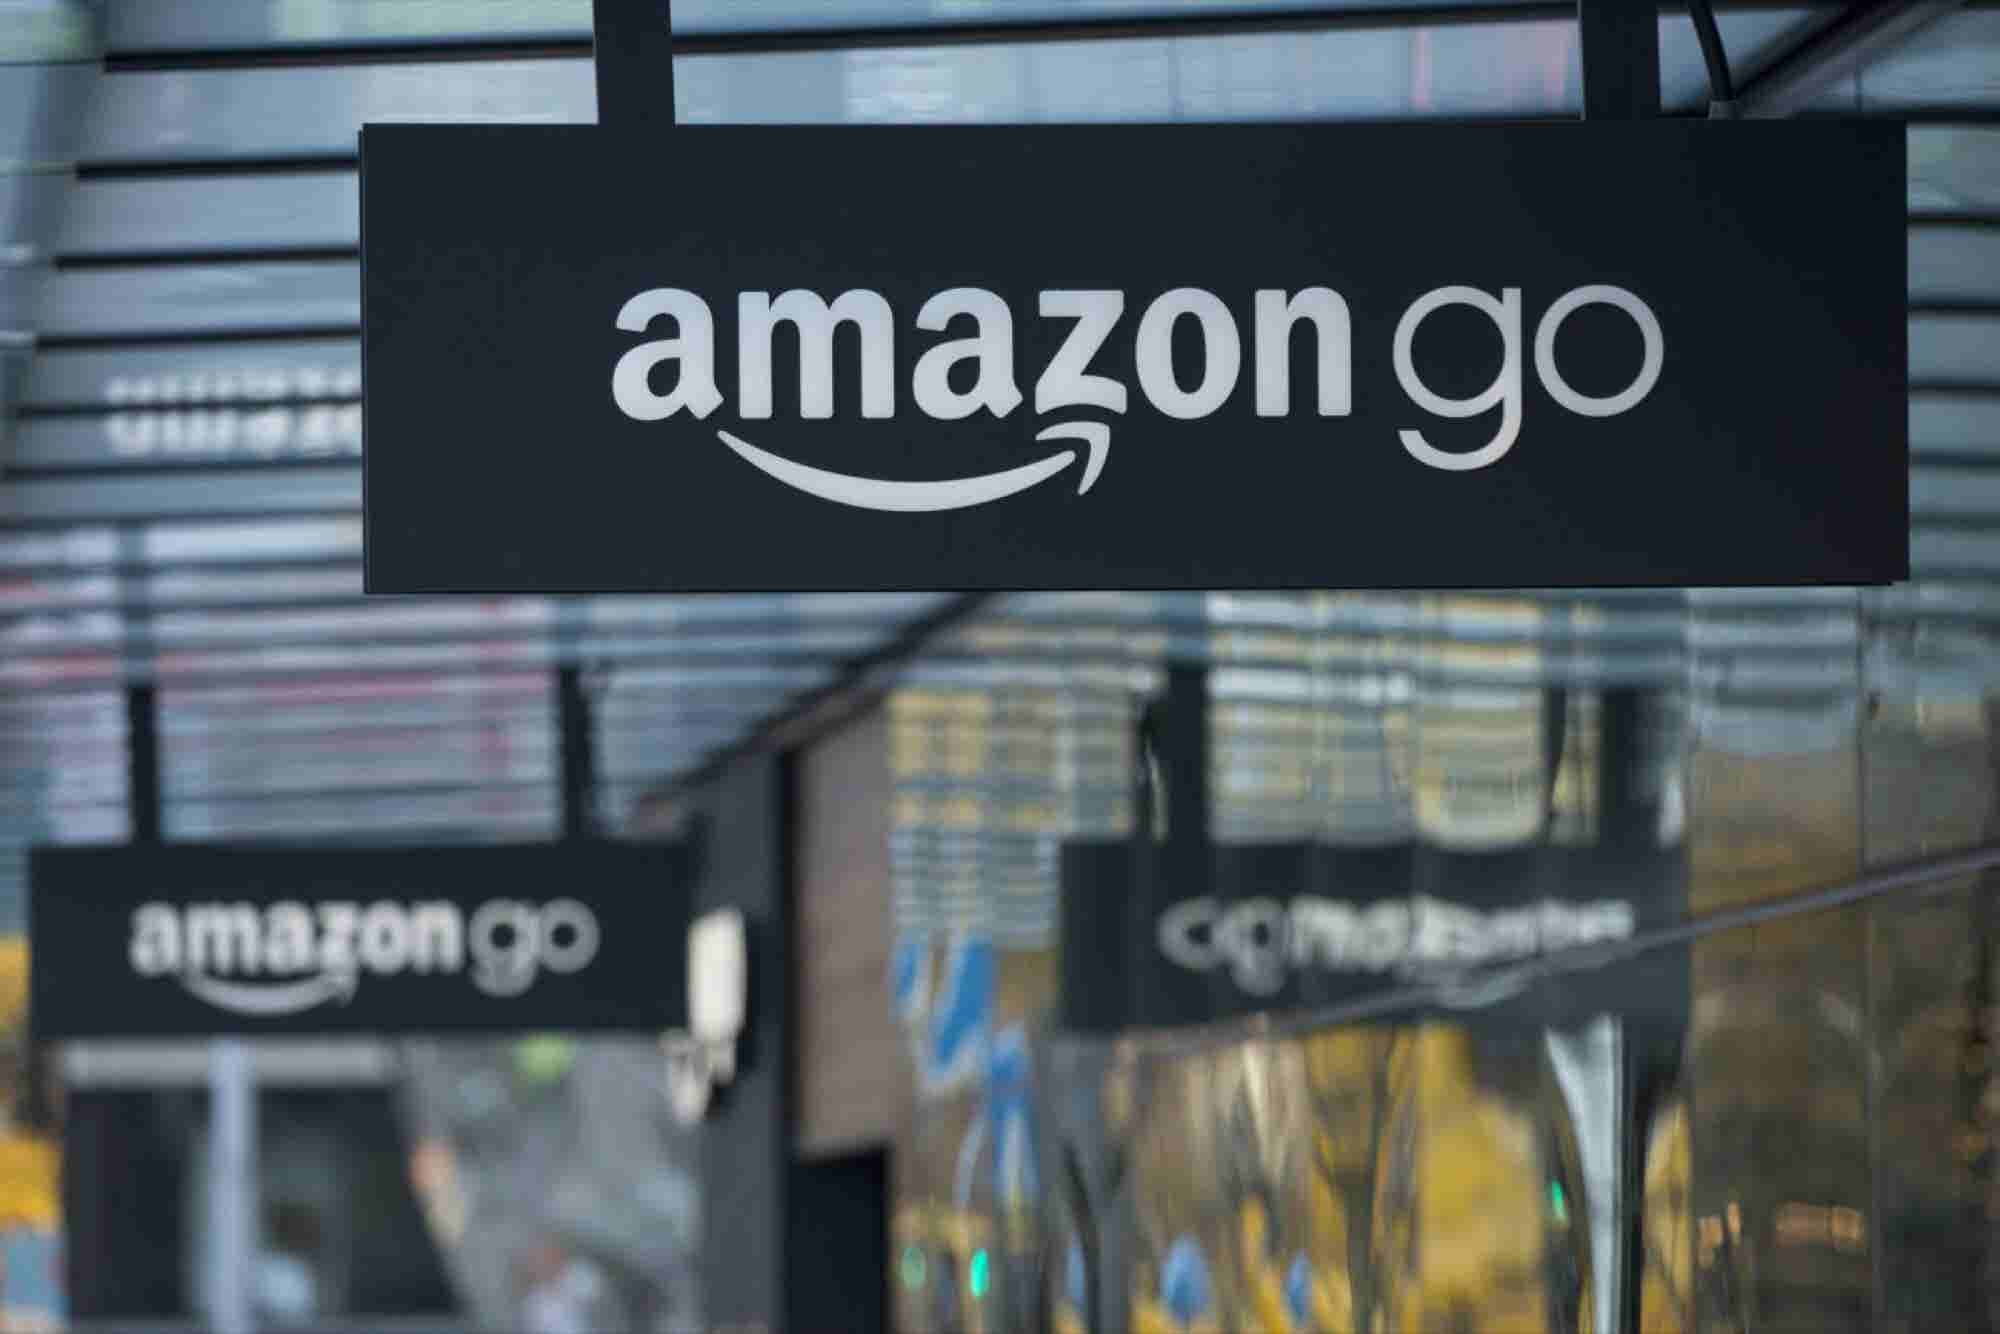 Cashierless Amazon Go Stores to Open in Chicago and San Francisco